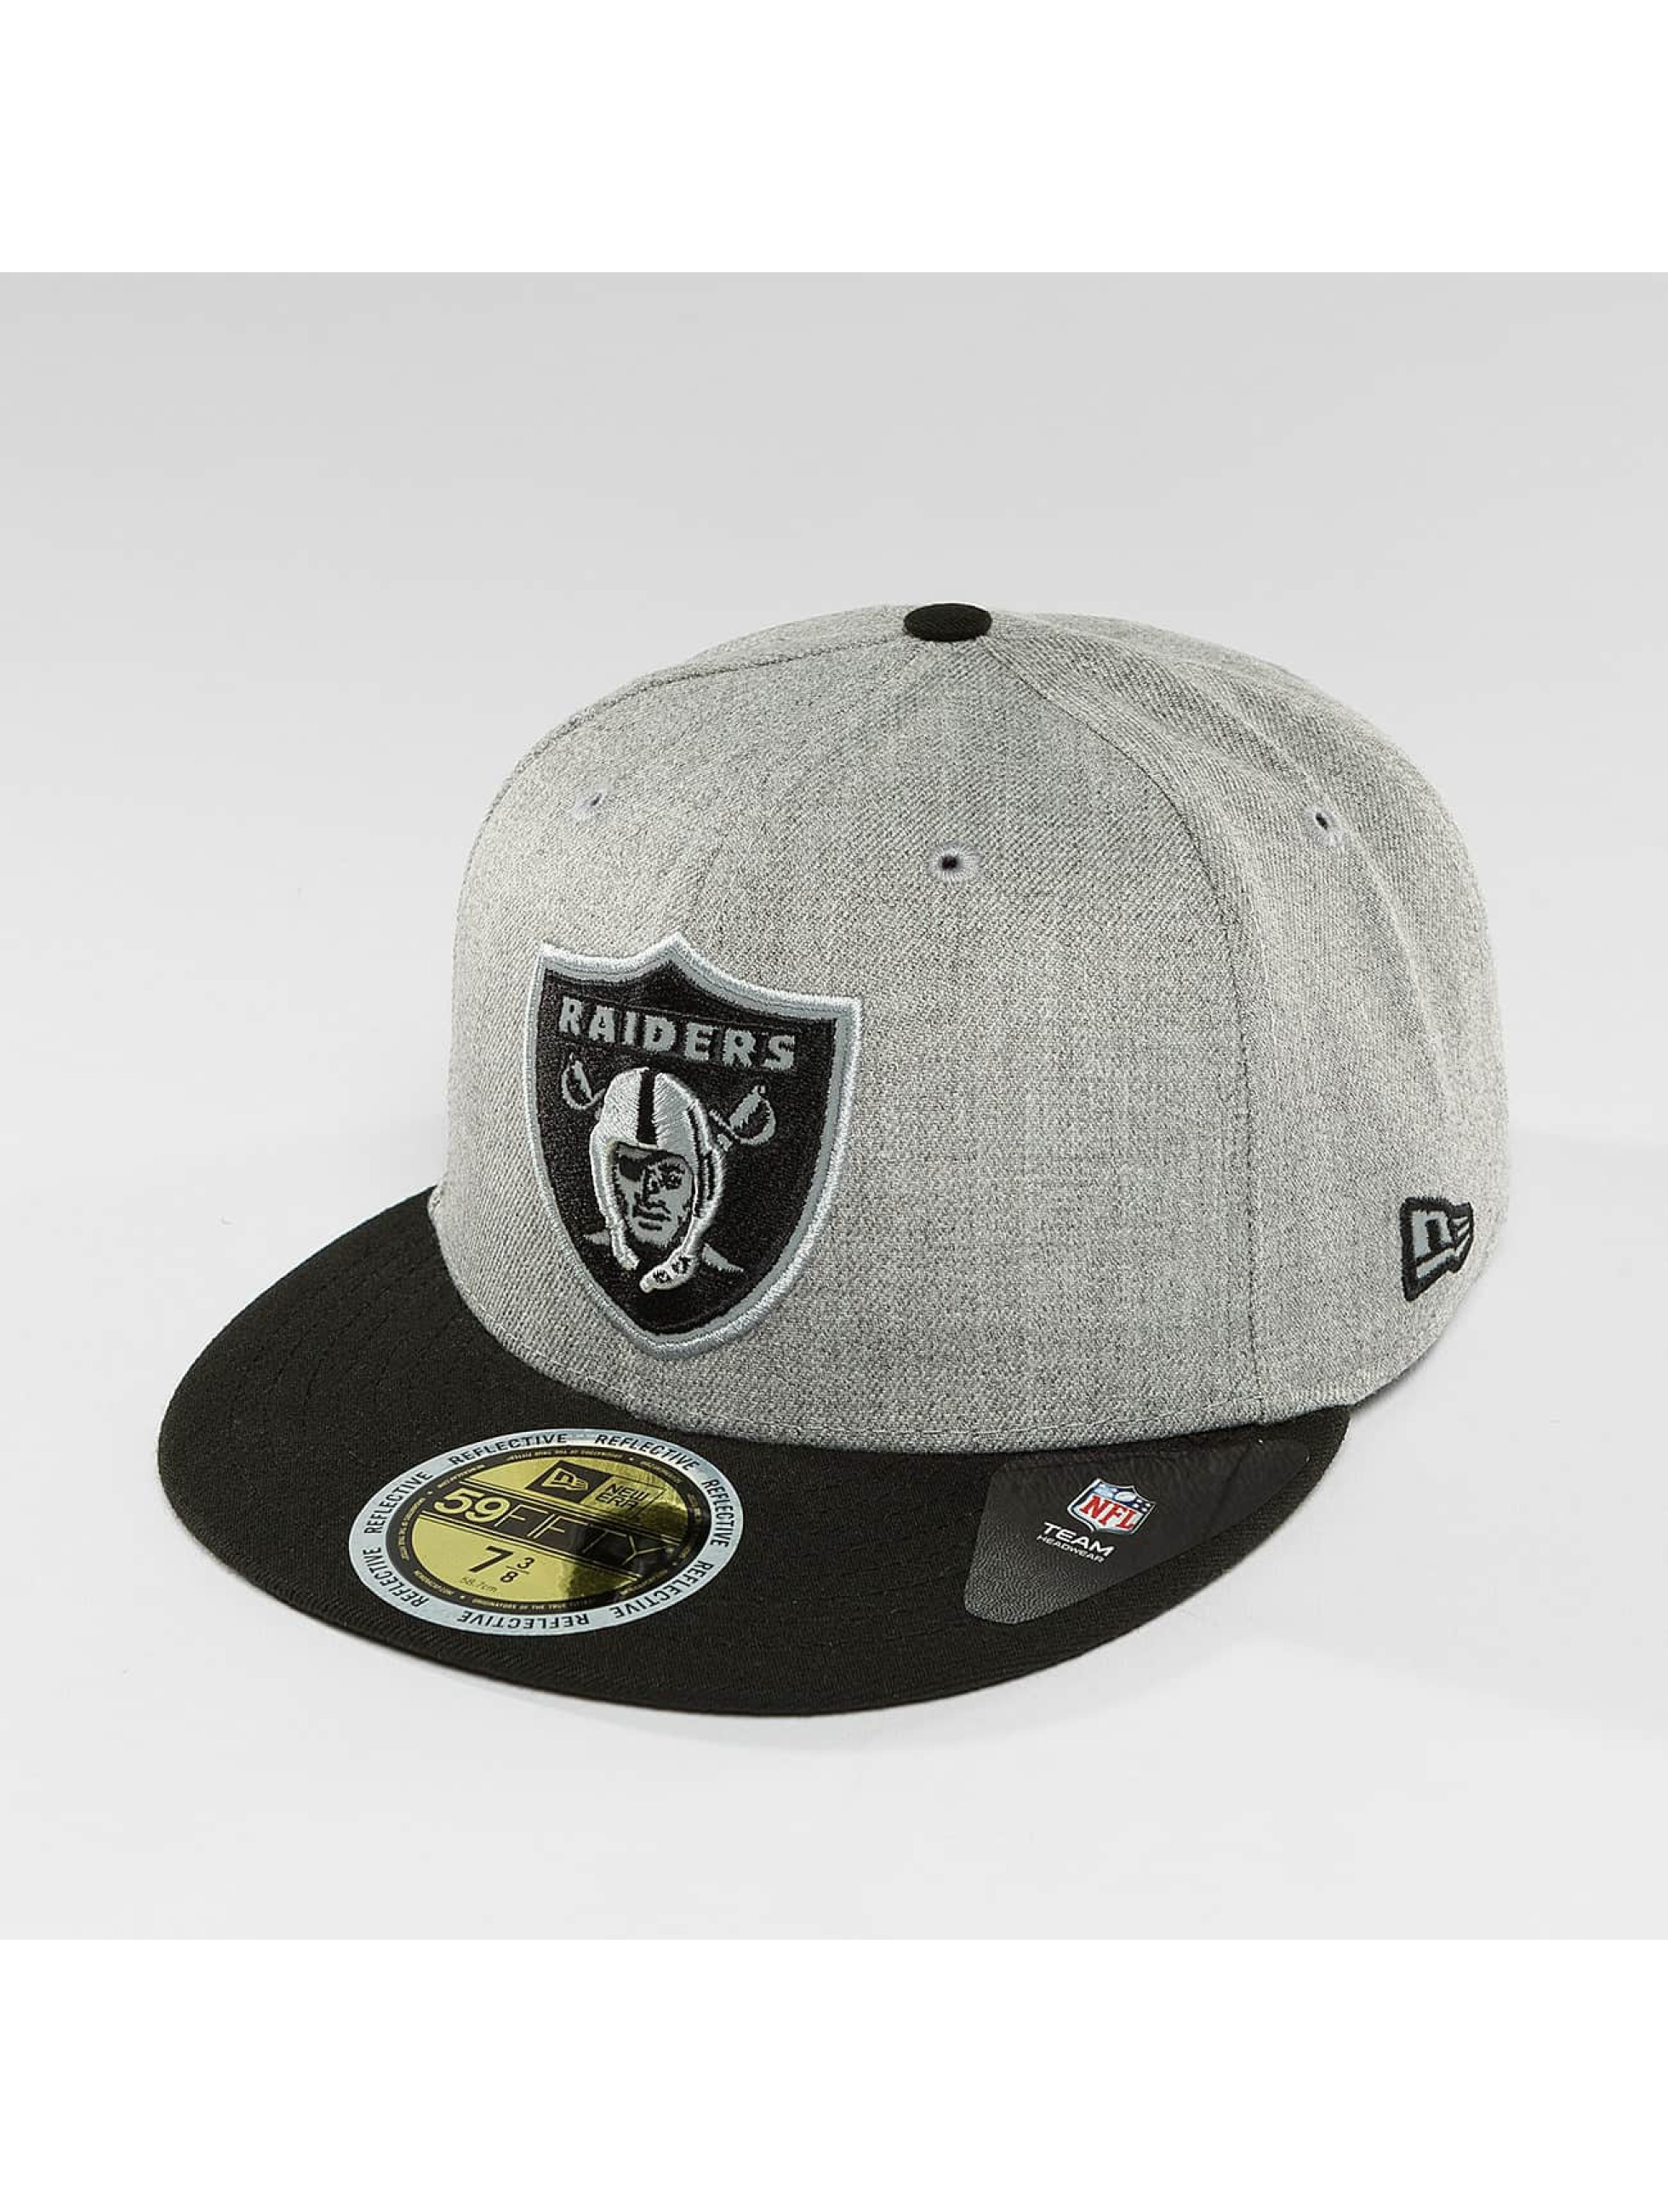 New Era Fitted Cap New Era Reflective Heather Oakland Raiders 59Fifty gray